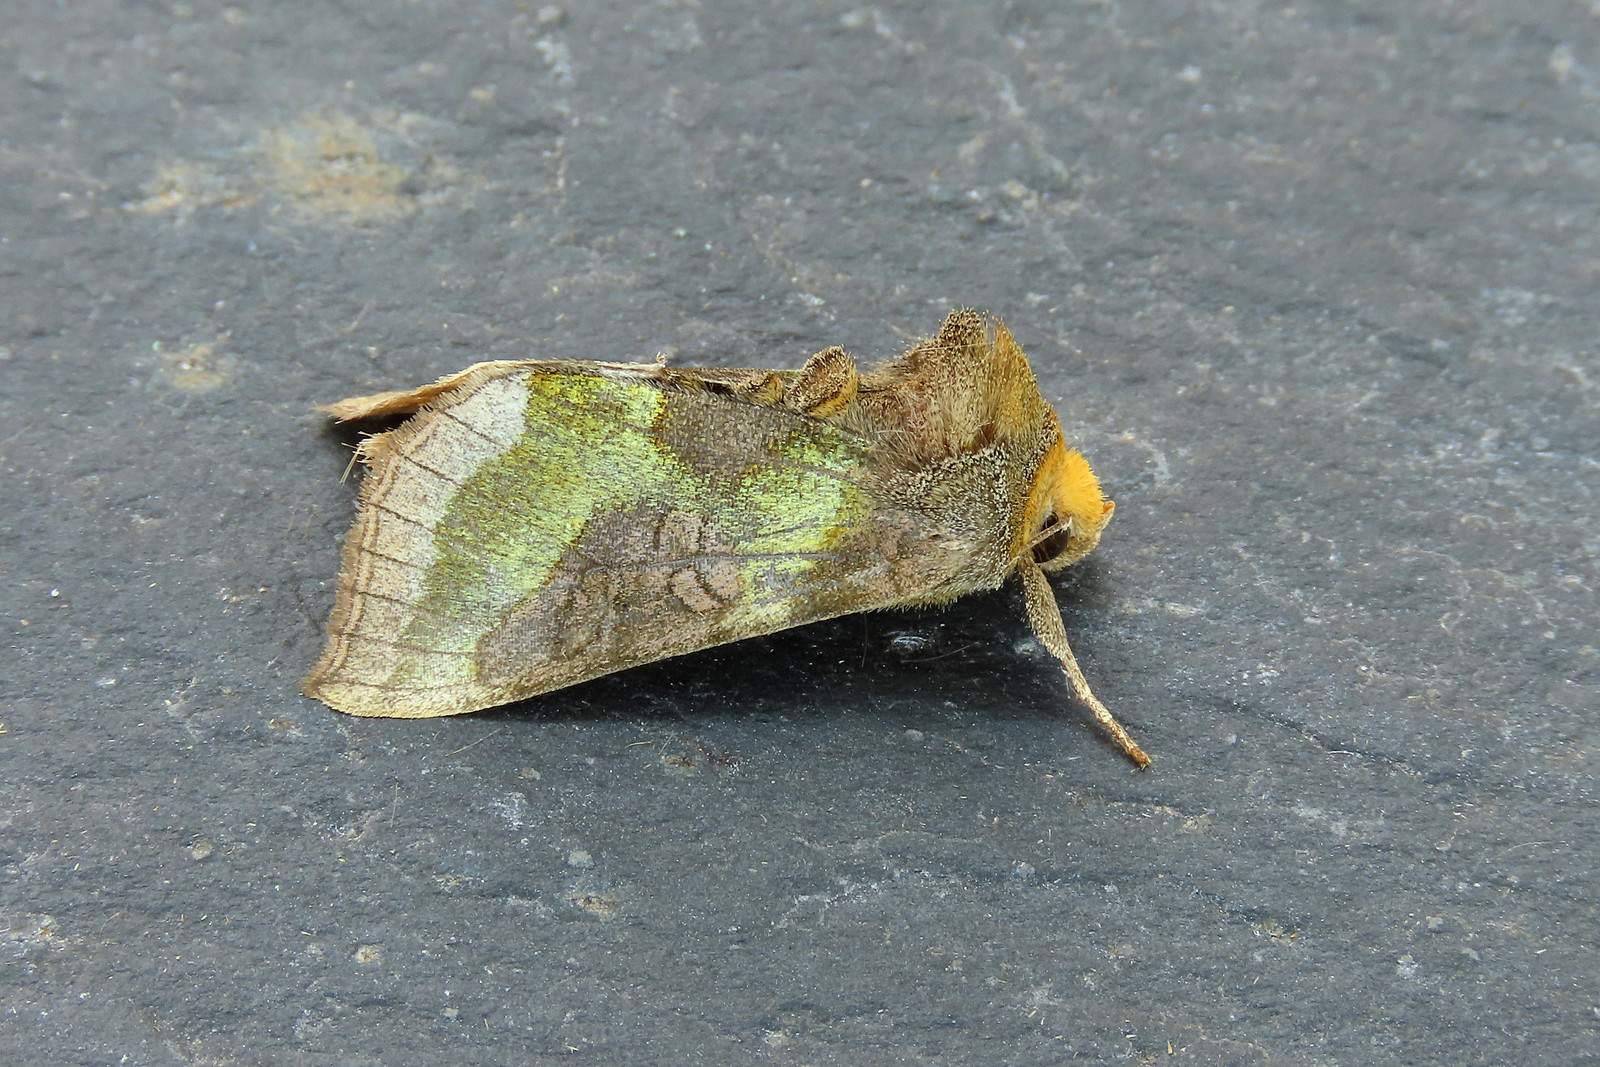 73.012 Burnished Brass - Diachrysia chrysitis